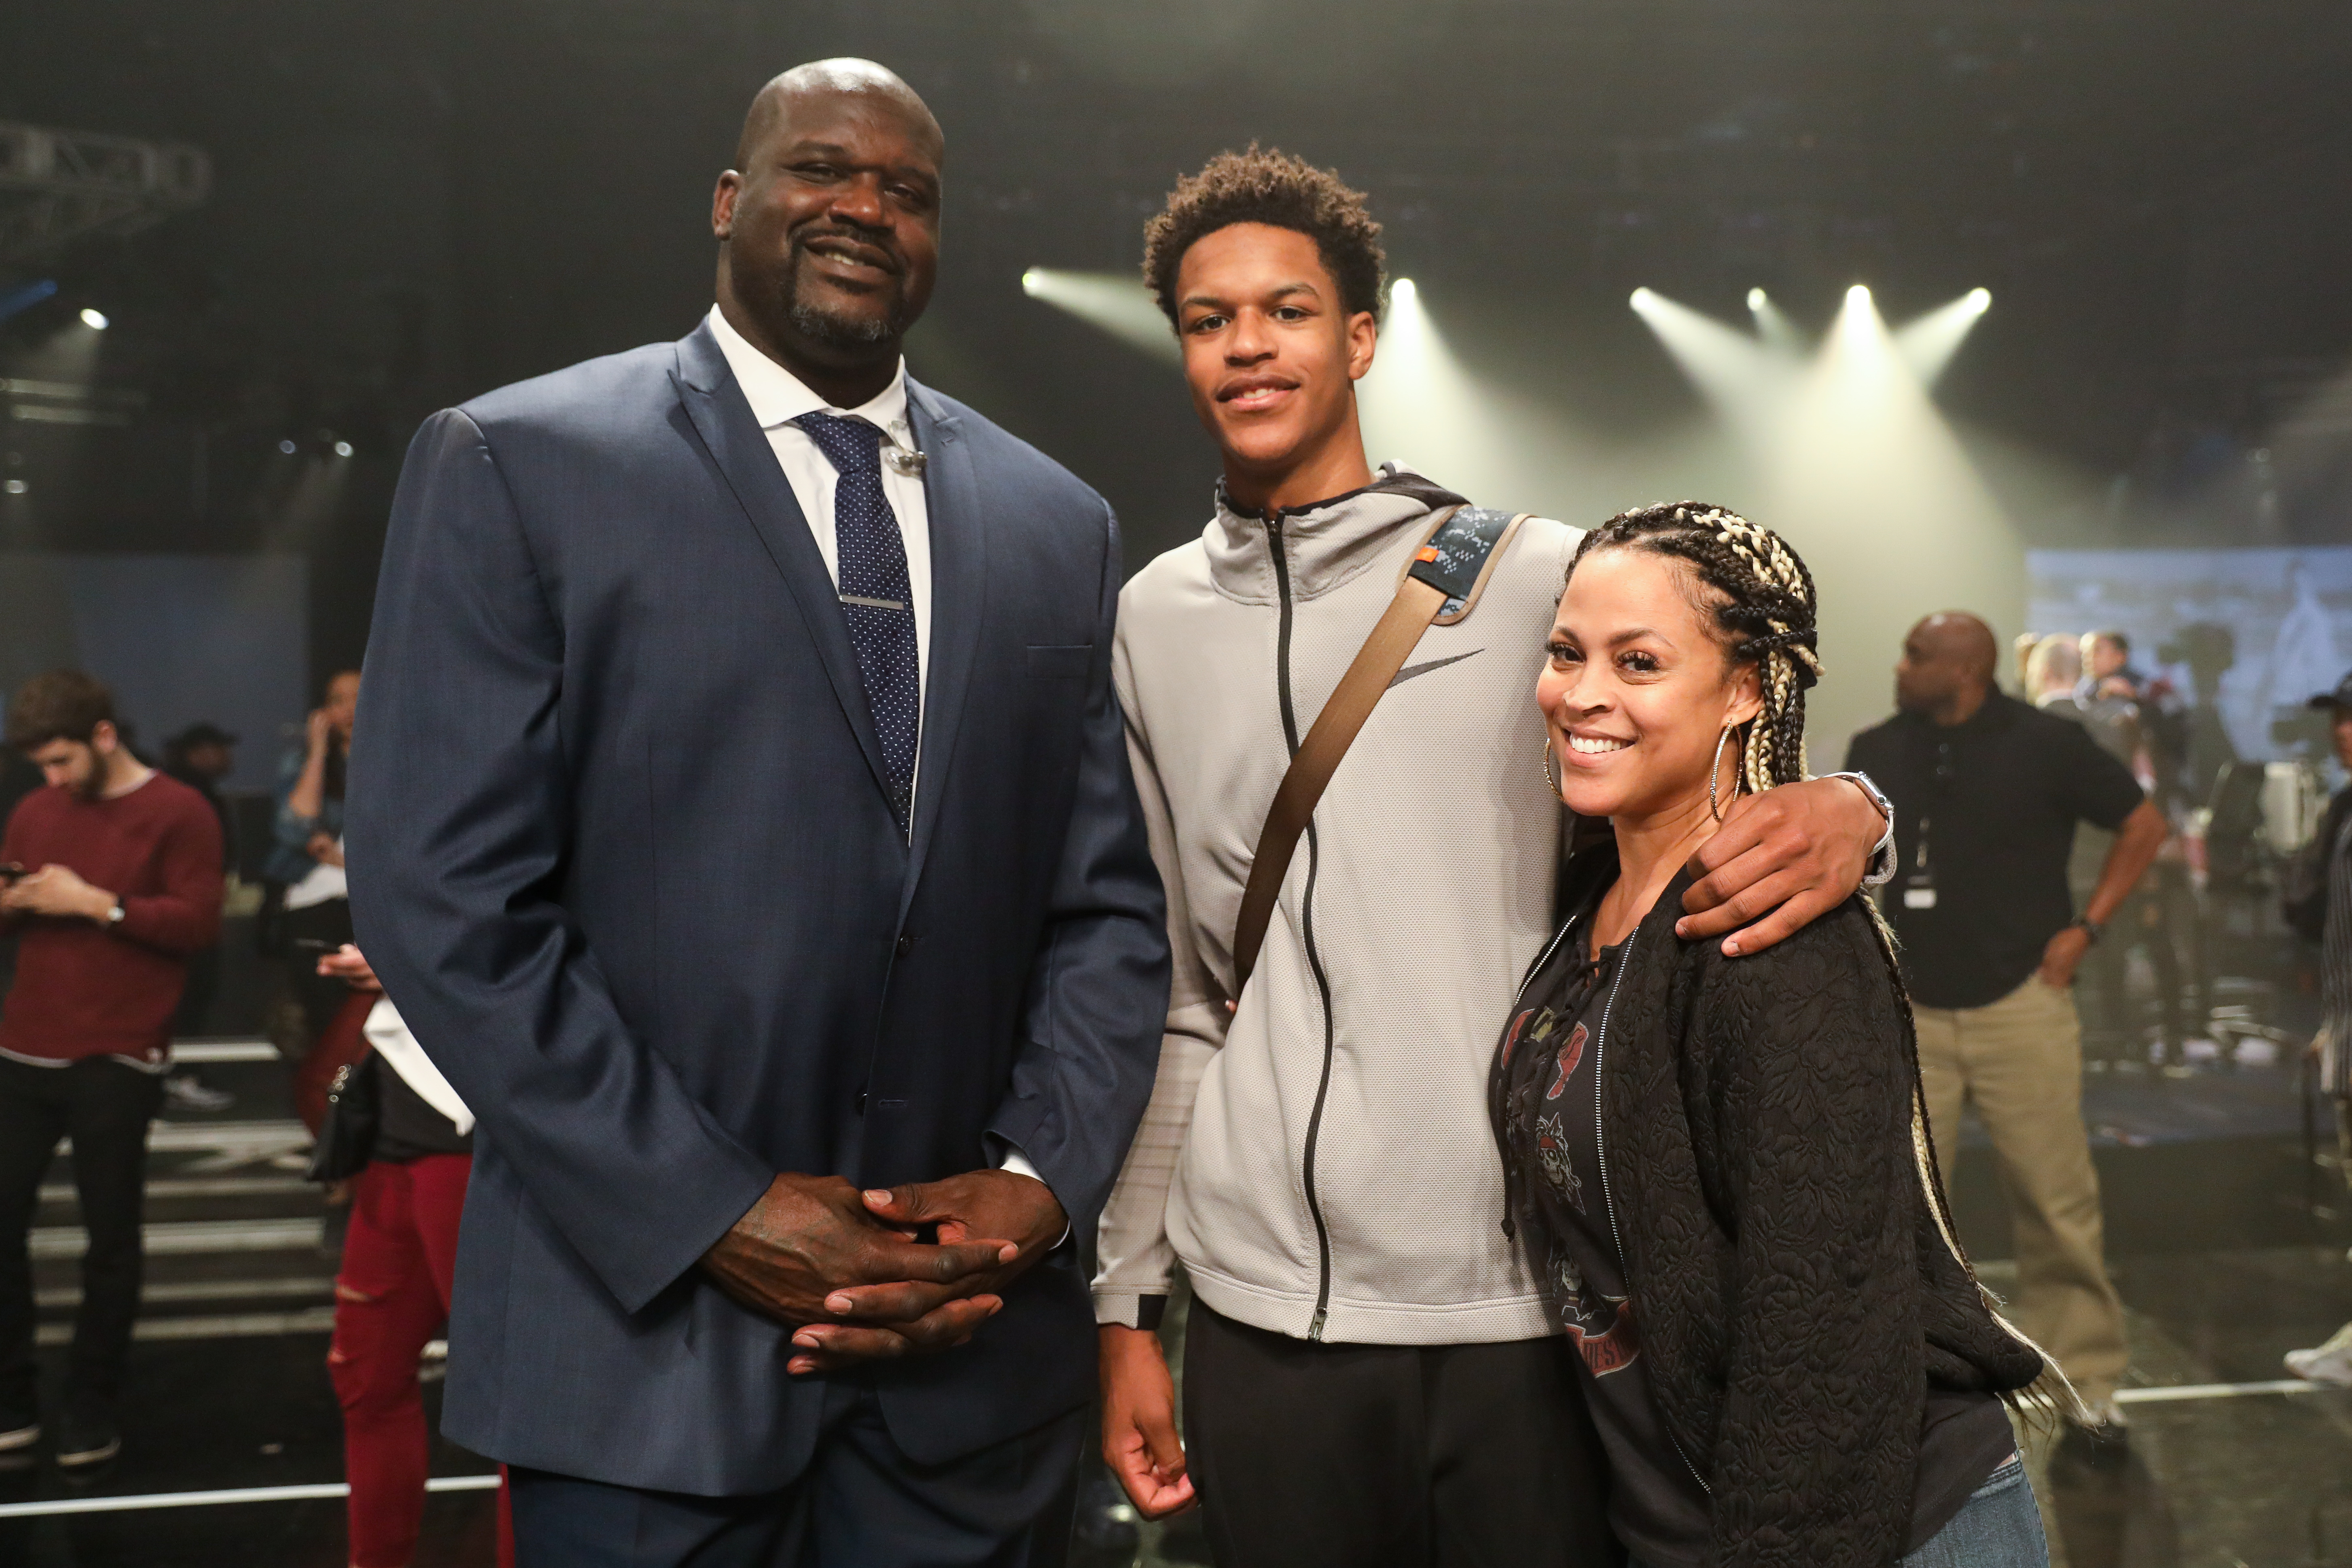 Heart Ailment Will Sideline Shareef O'Neal, Shaq's Son For The Entire Season